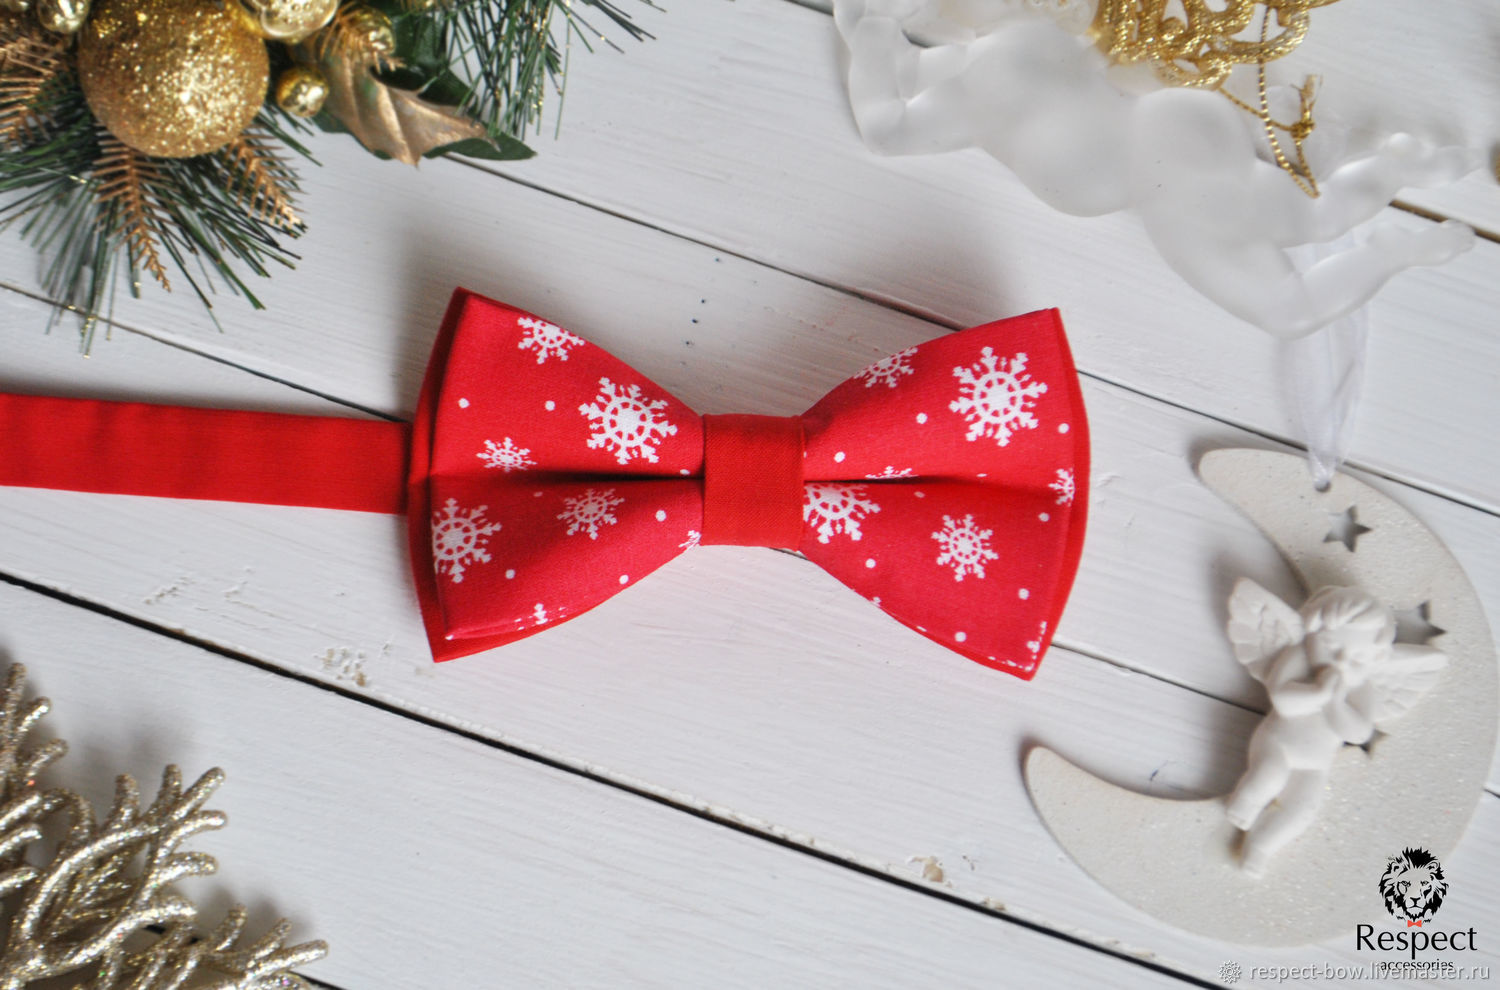 red bow tie with christmas picture snowflakes on a scarlet red cloth